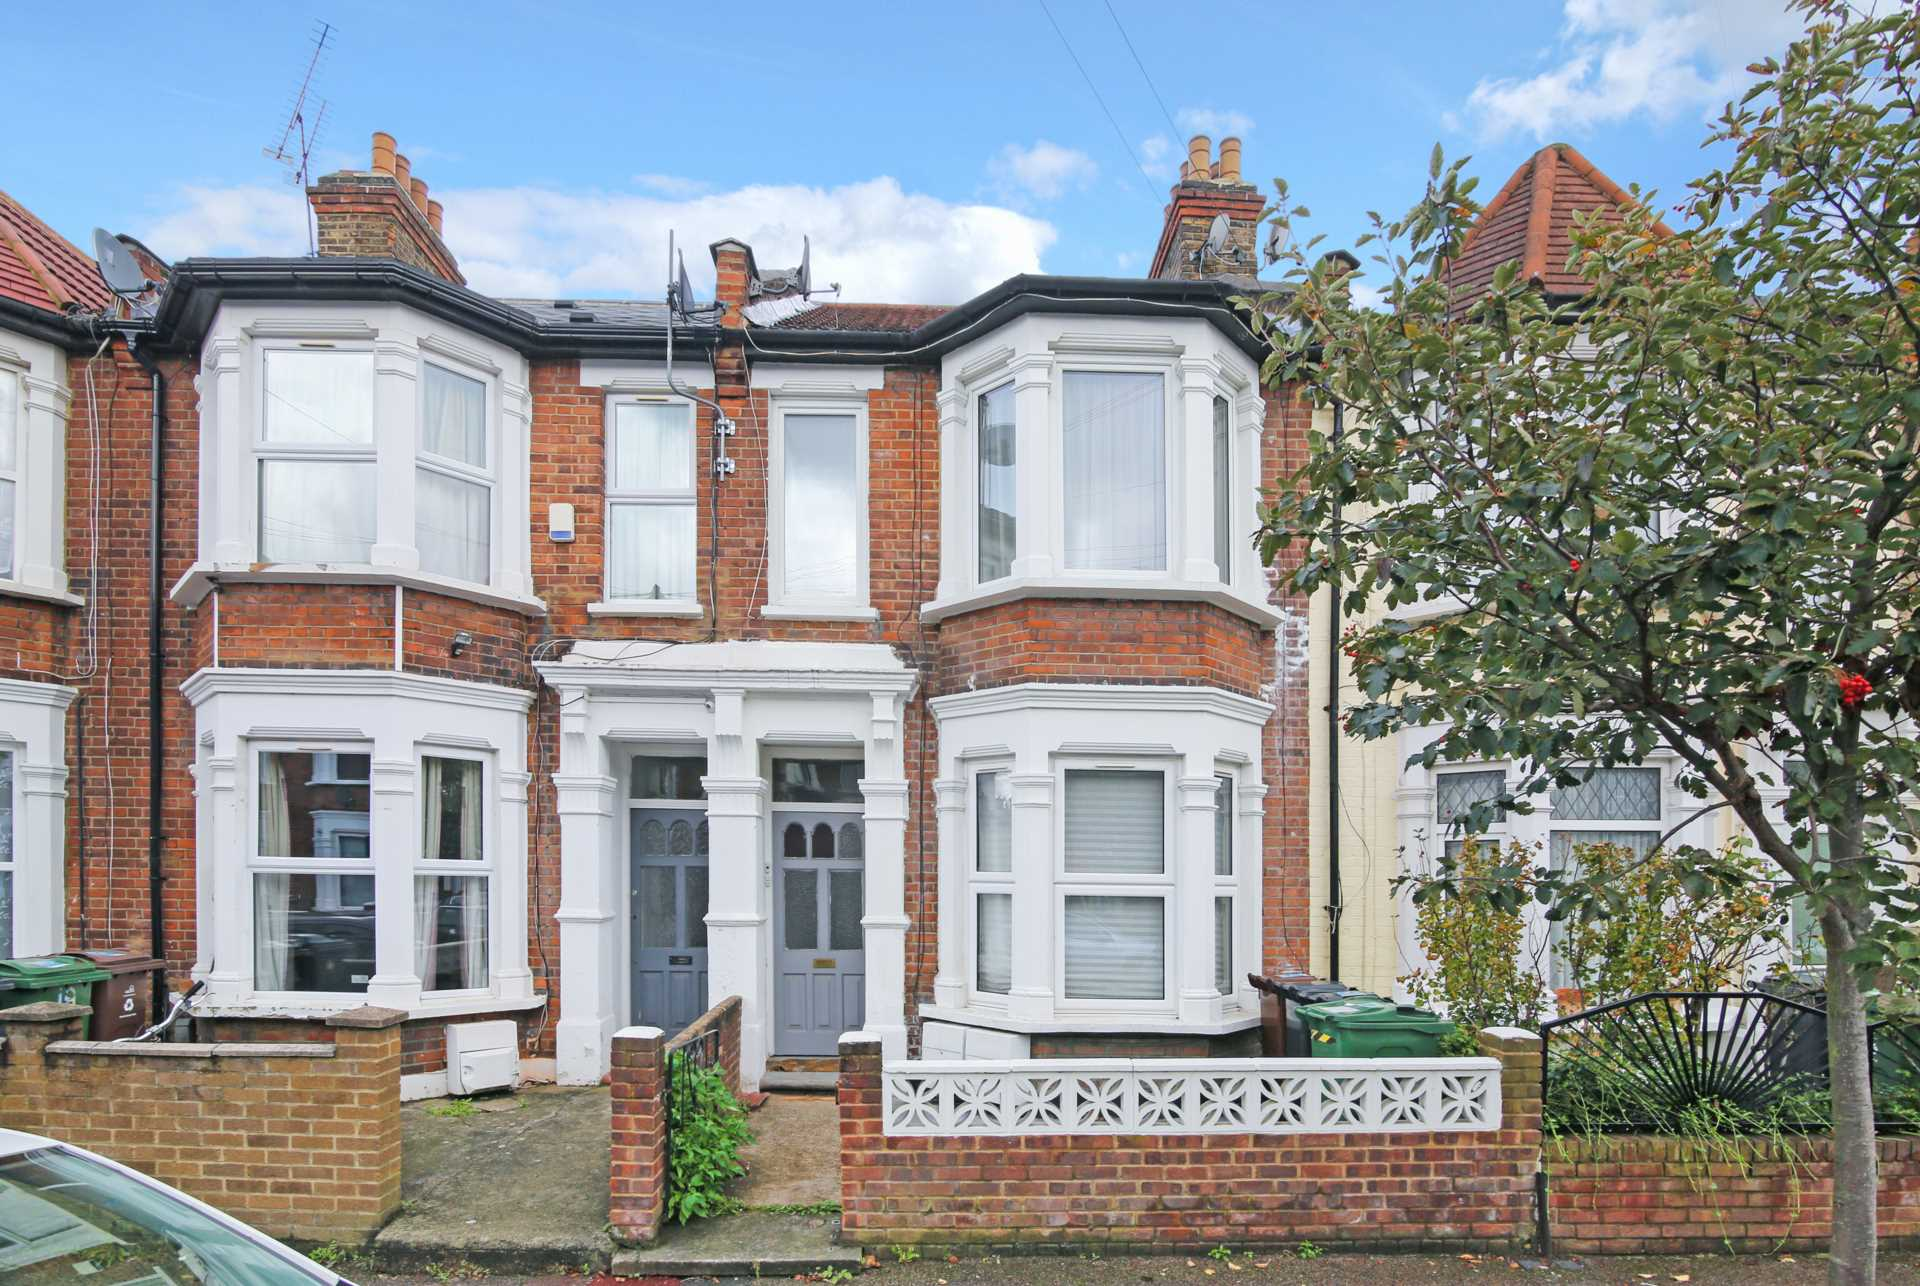 beautiful London flat in terraced house with white frame bay windows